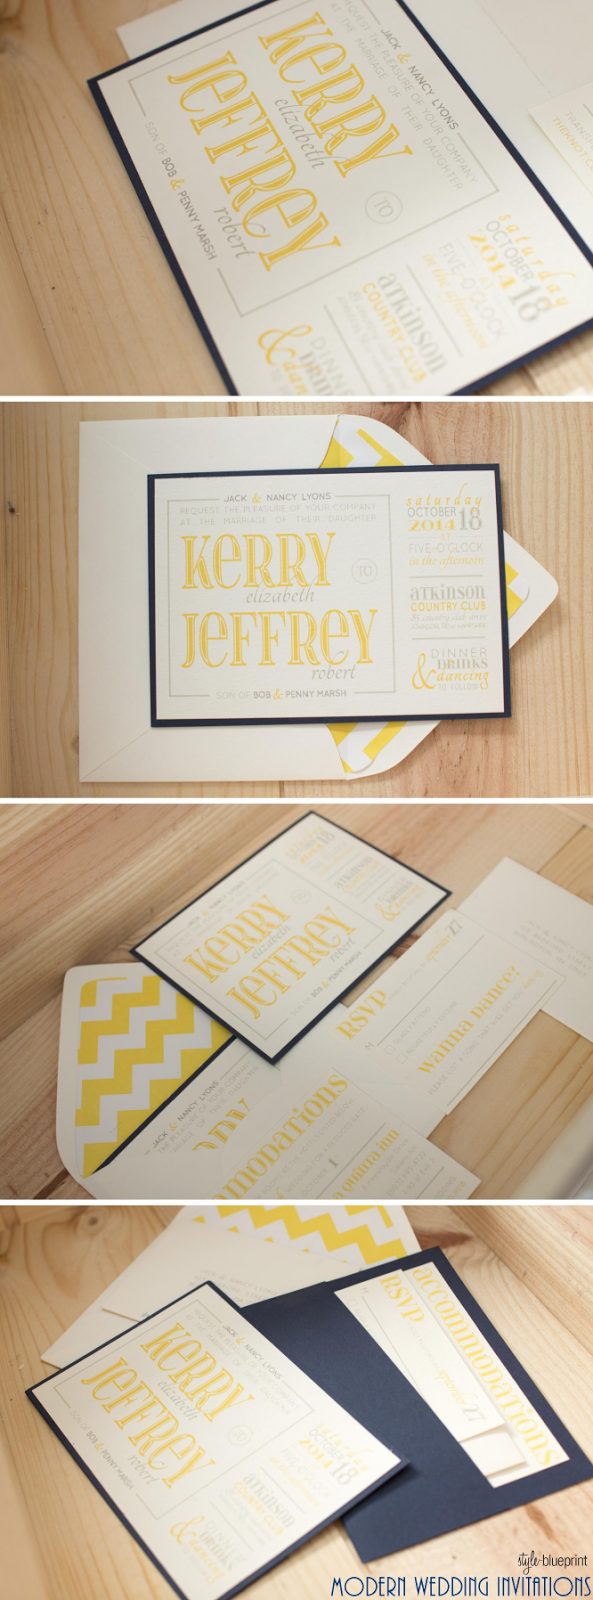 Kerry and jeffs wedding invitations modern wedding invitations kerry and jeffs wedding invitations modern wedding invitations navy blue yellow monicamarmolfo Image collections